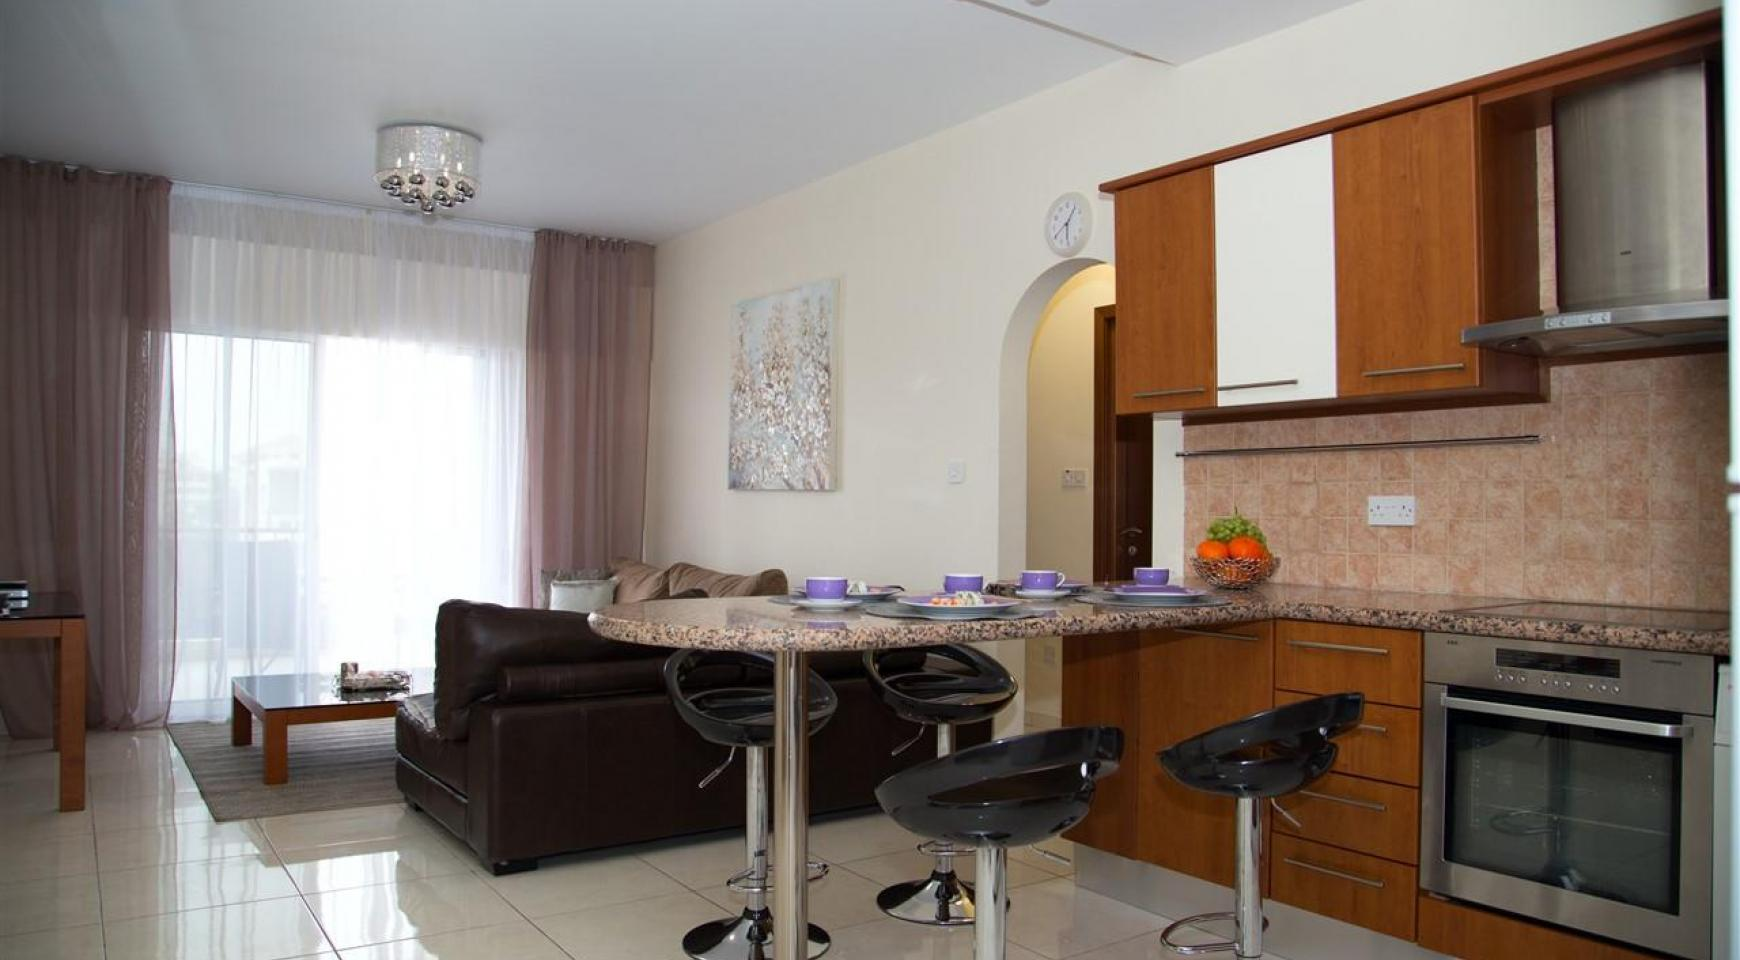 2 Bedroom Apartment Mesogios Iris 304 in the Complex near the Sea - 9